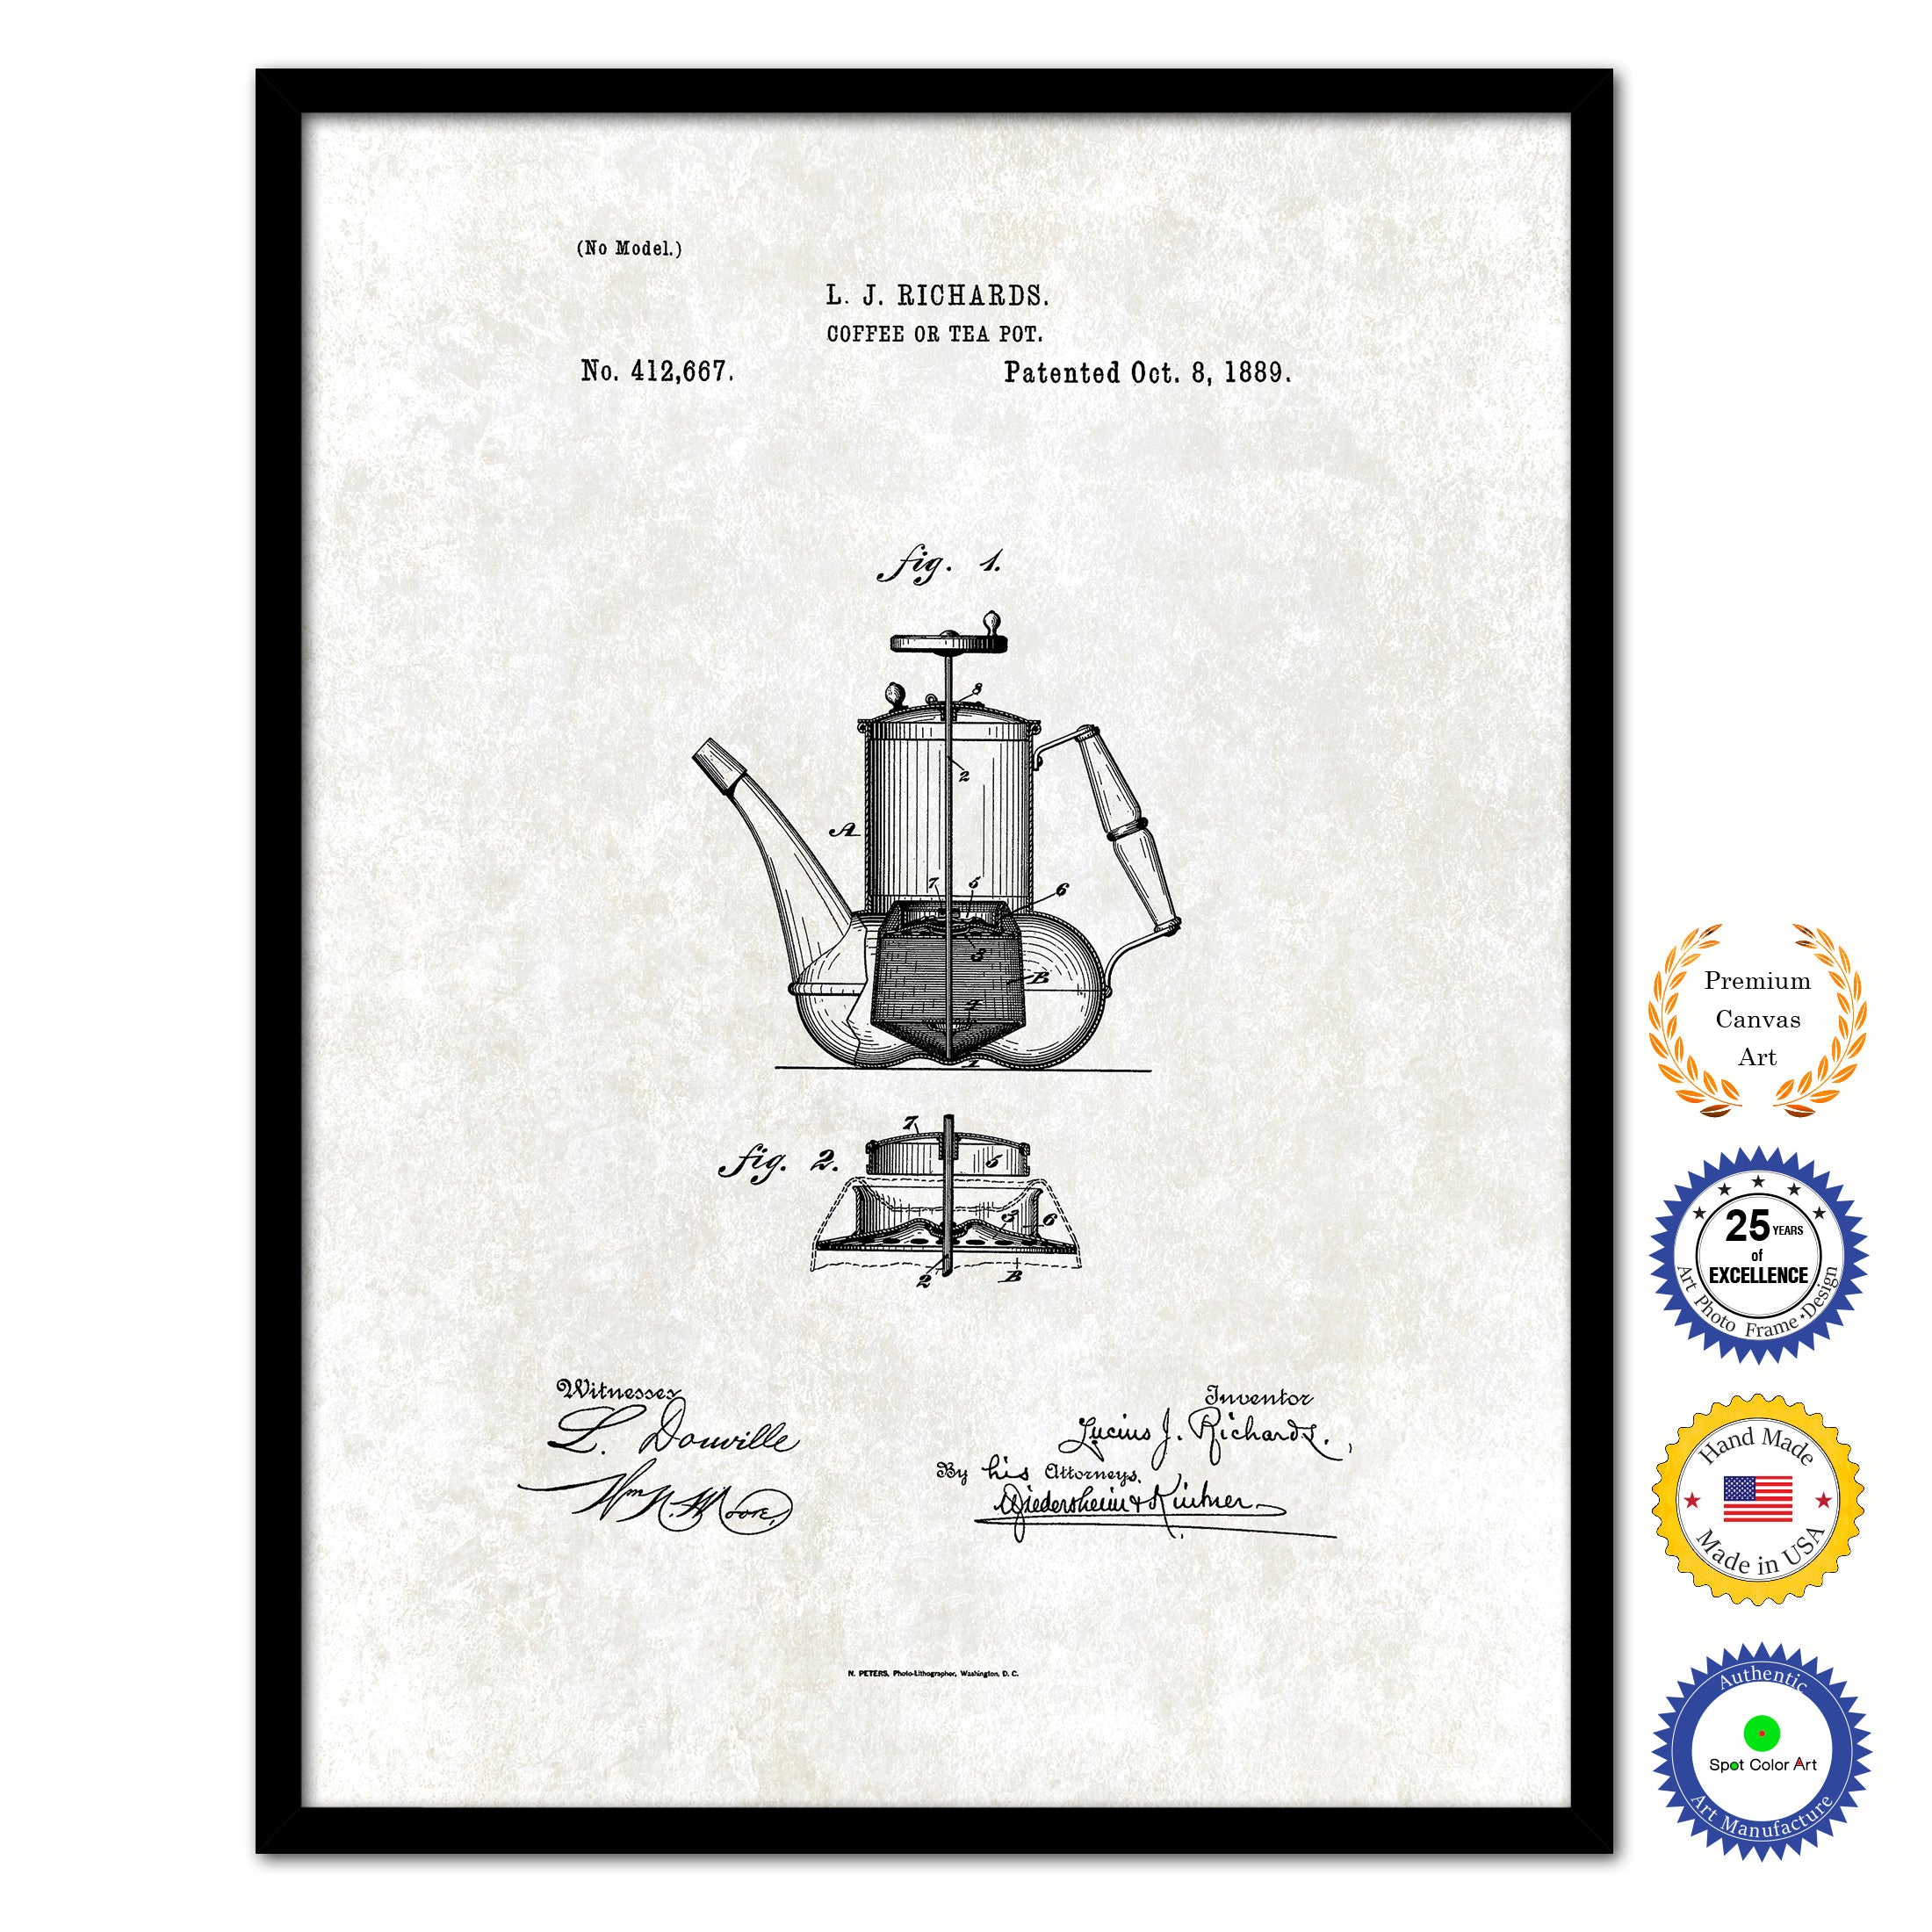 1889 Coffee or Tea Pot Vintage Patent Artwork Black Framed Canvas Print Home Office Decor Great for Coffee Lover Cafe Tea Shop